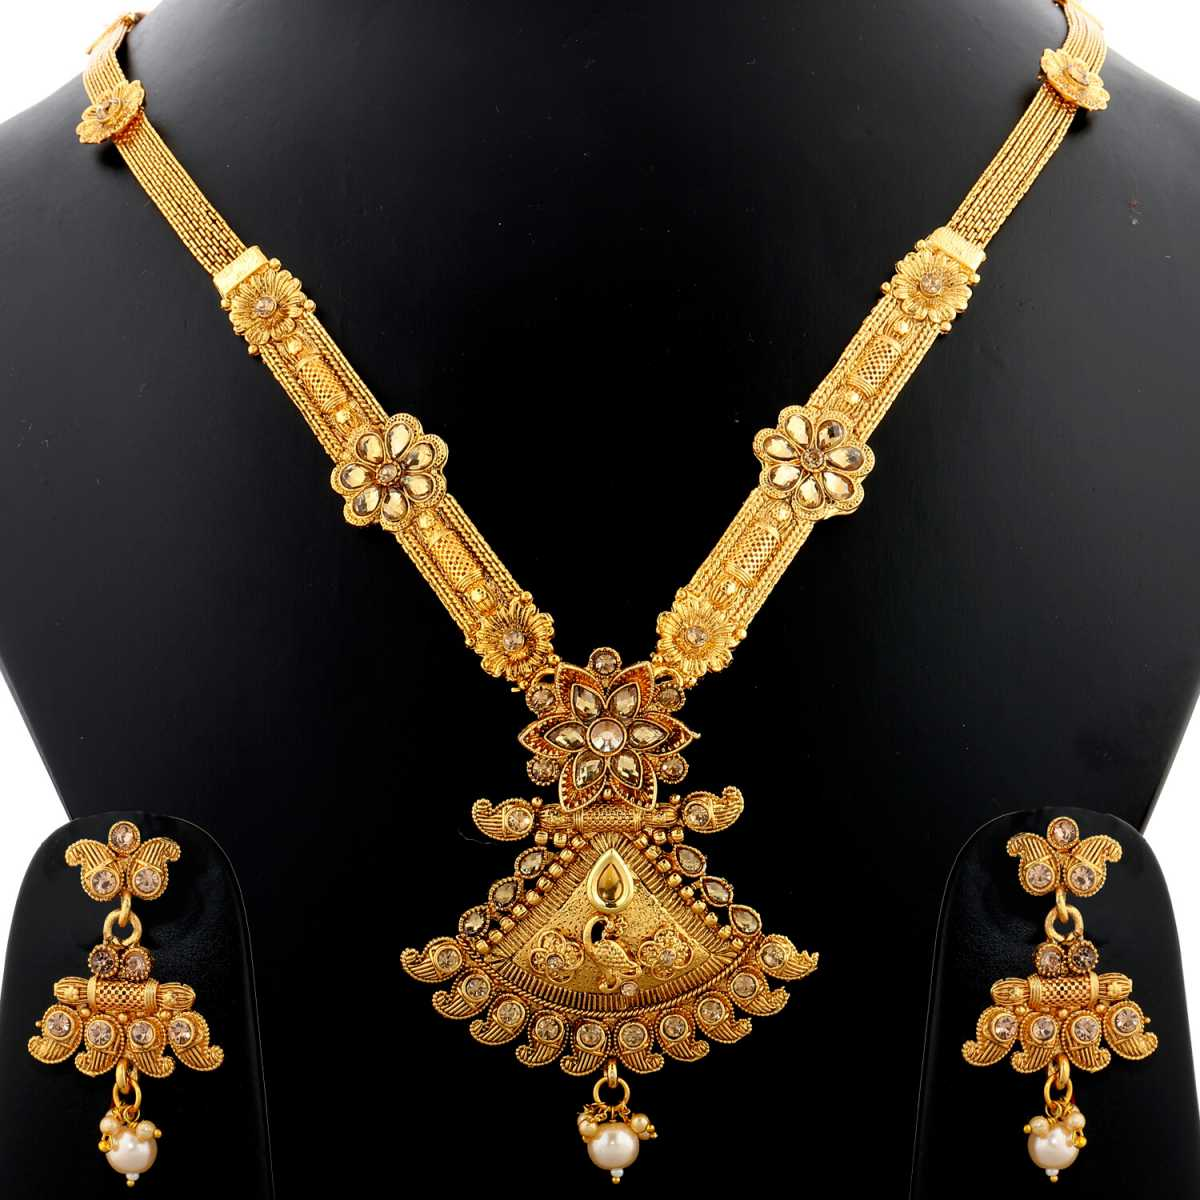 Silver Shine Exclusive Traditional Gold Plated   high Reflects elegance Designer Ethnic Long Necklace Set  Jewellery  For Women And Girls